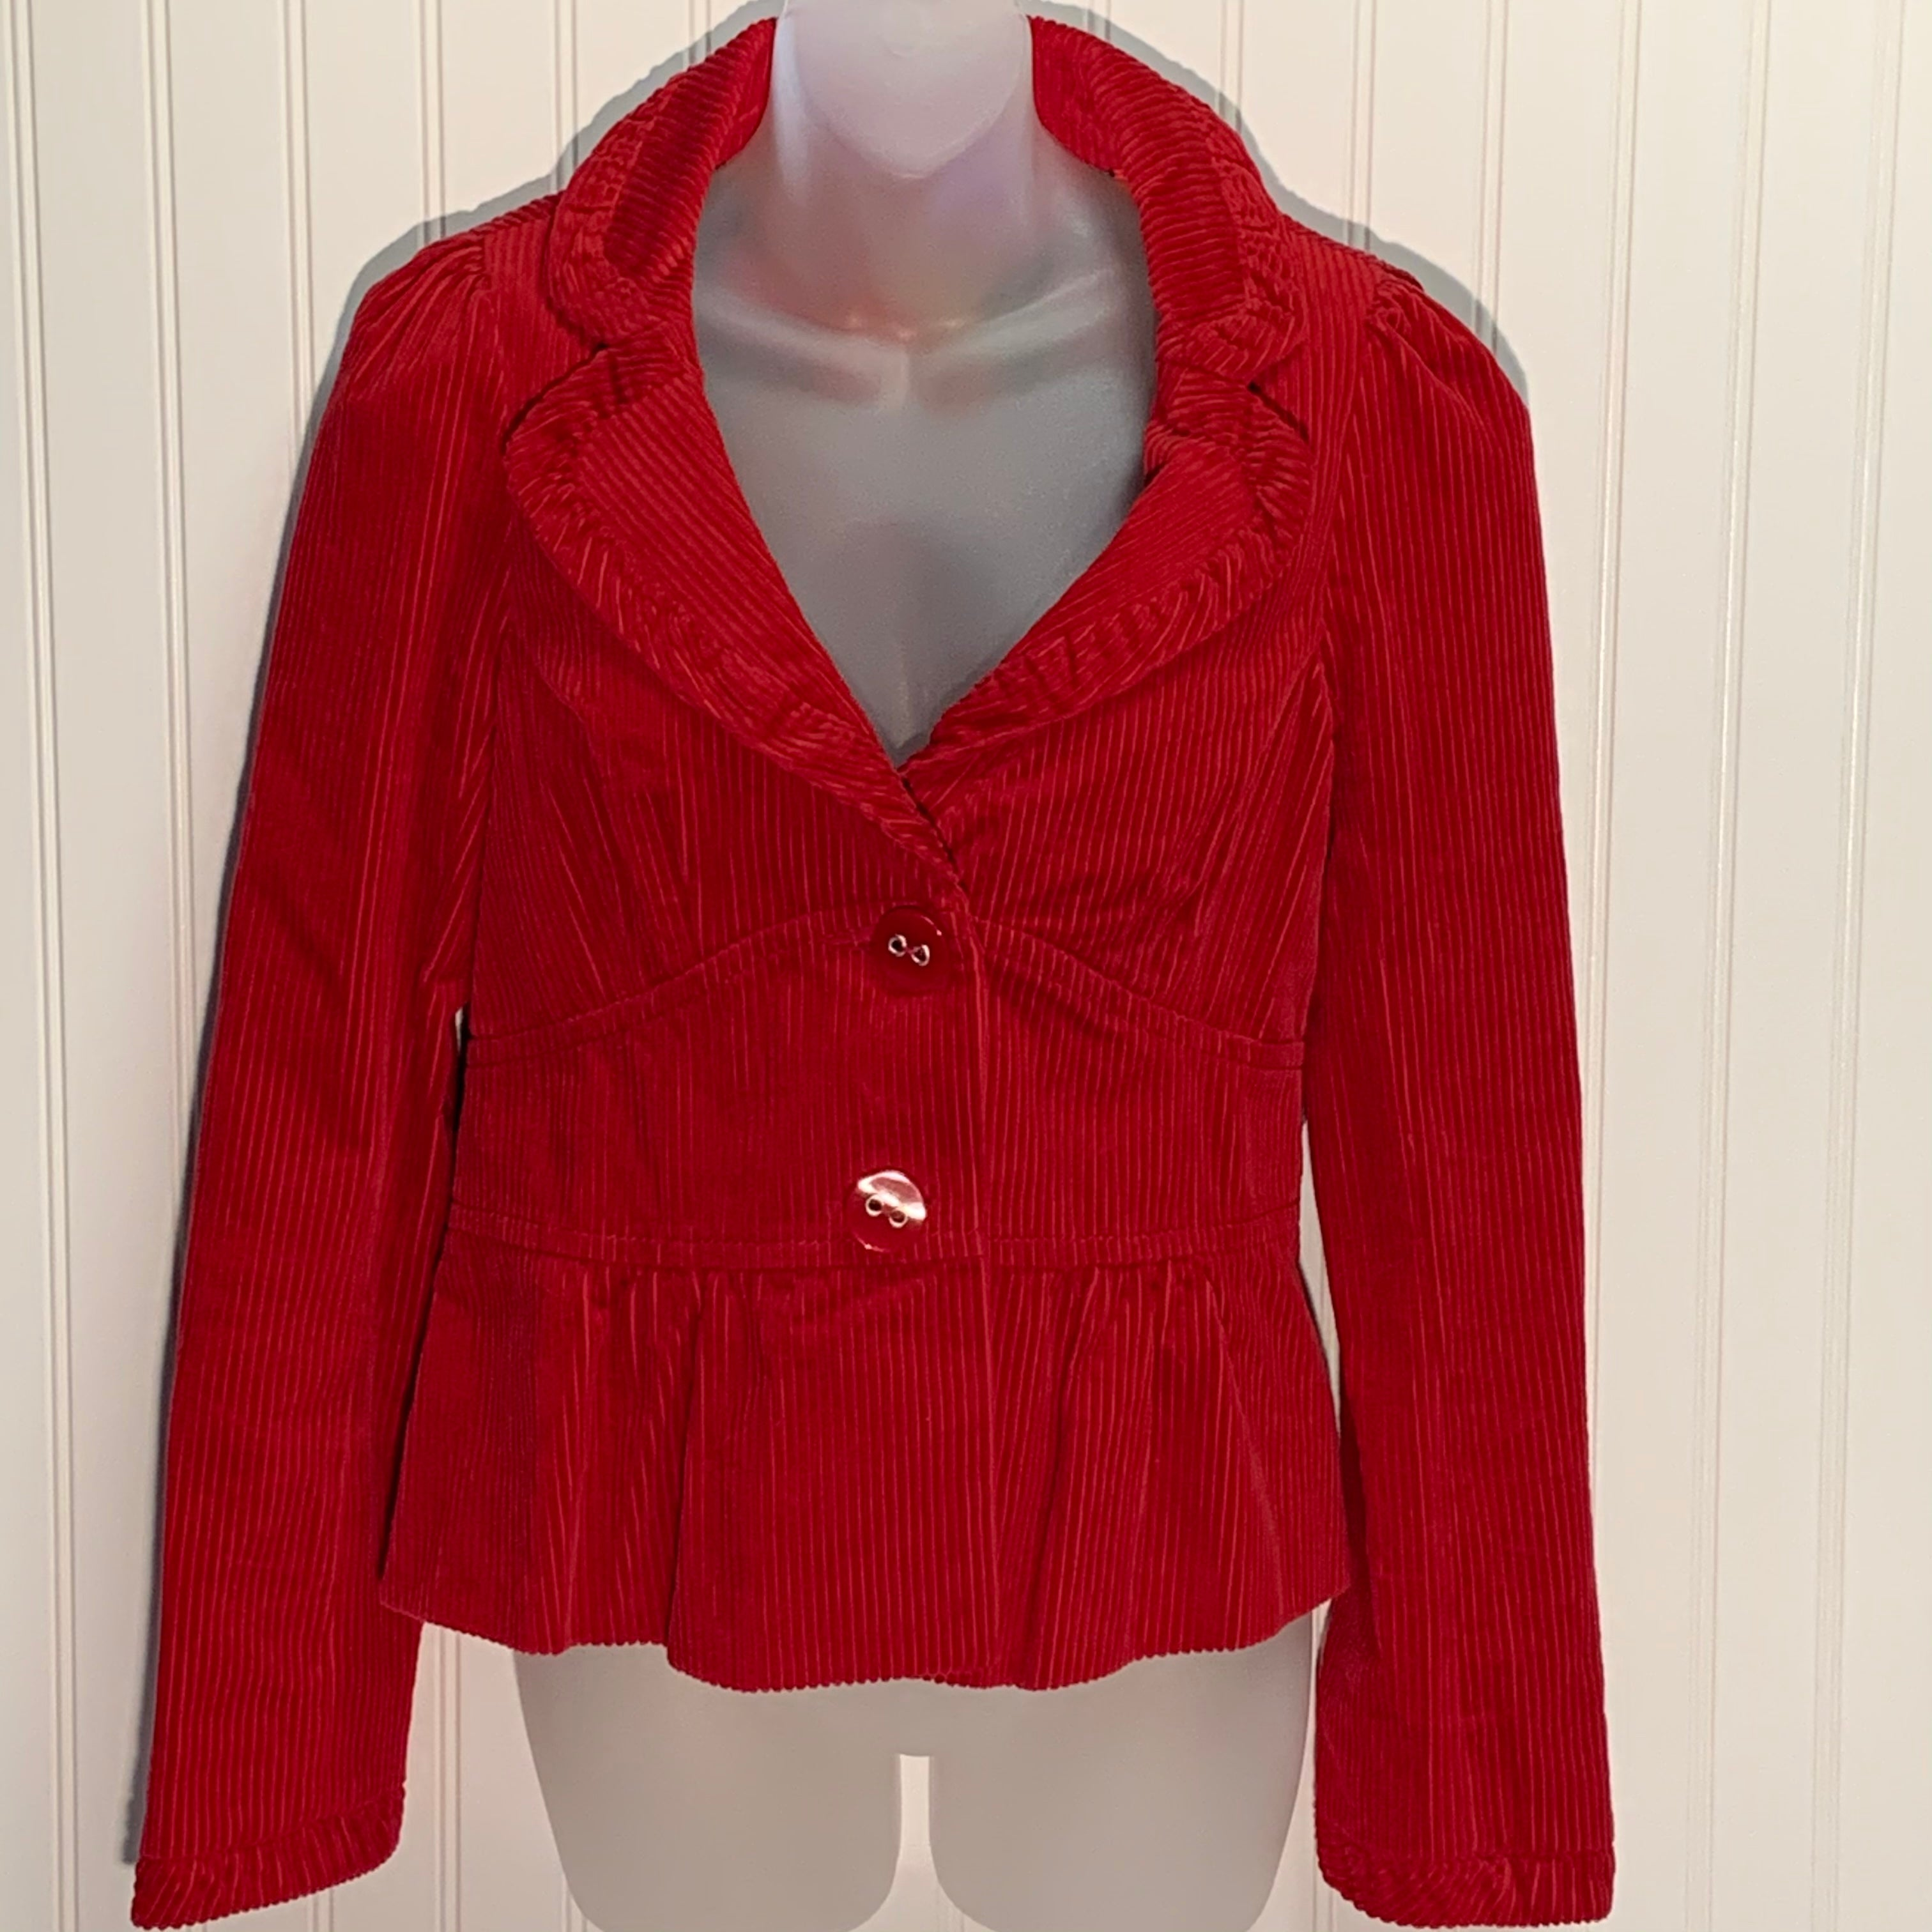 Primary Photo - BRAND: ELEVENSES <BR>STYLE: BLAZER JACKET <BR>COLOR: RED <BR>SIZE: 8 <BR>OTHER INFO: ANTHROPOLOGIE <BR>SKU: 239-23911-70969